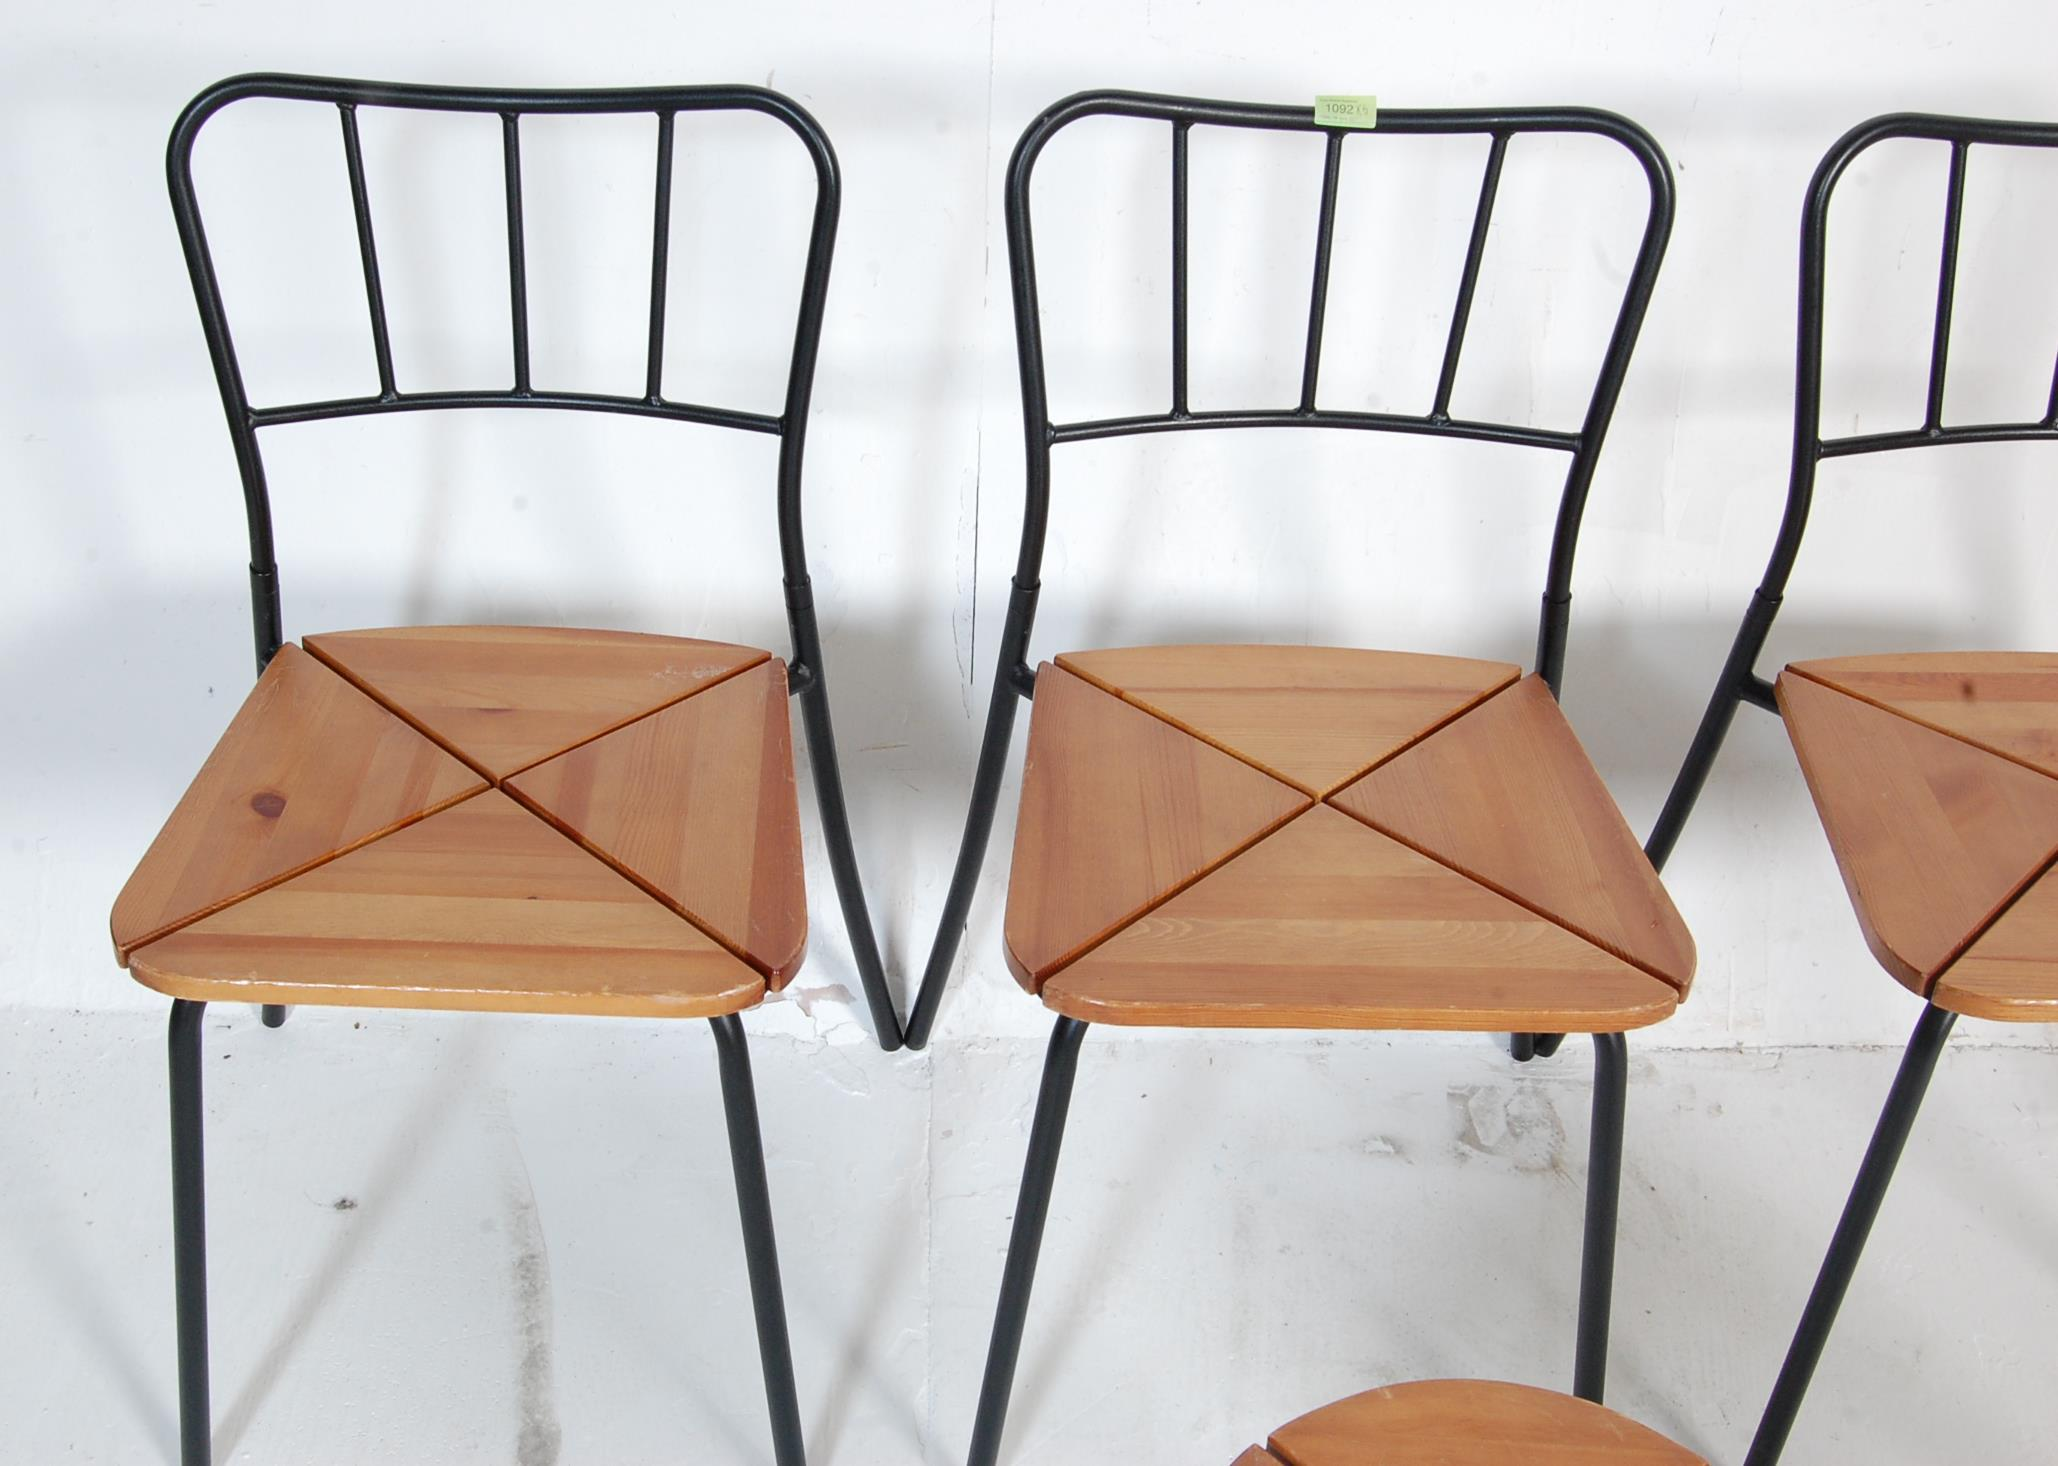 SET OF FOUR CONTEMPORARY INDUSTRIAL DINING CHAIRS - Image 3 of 7